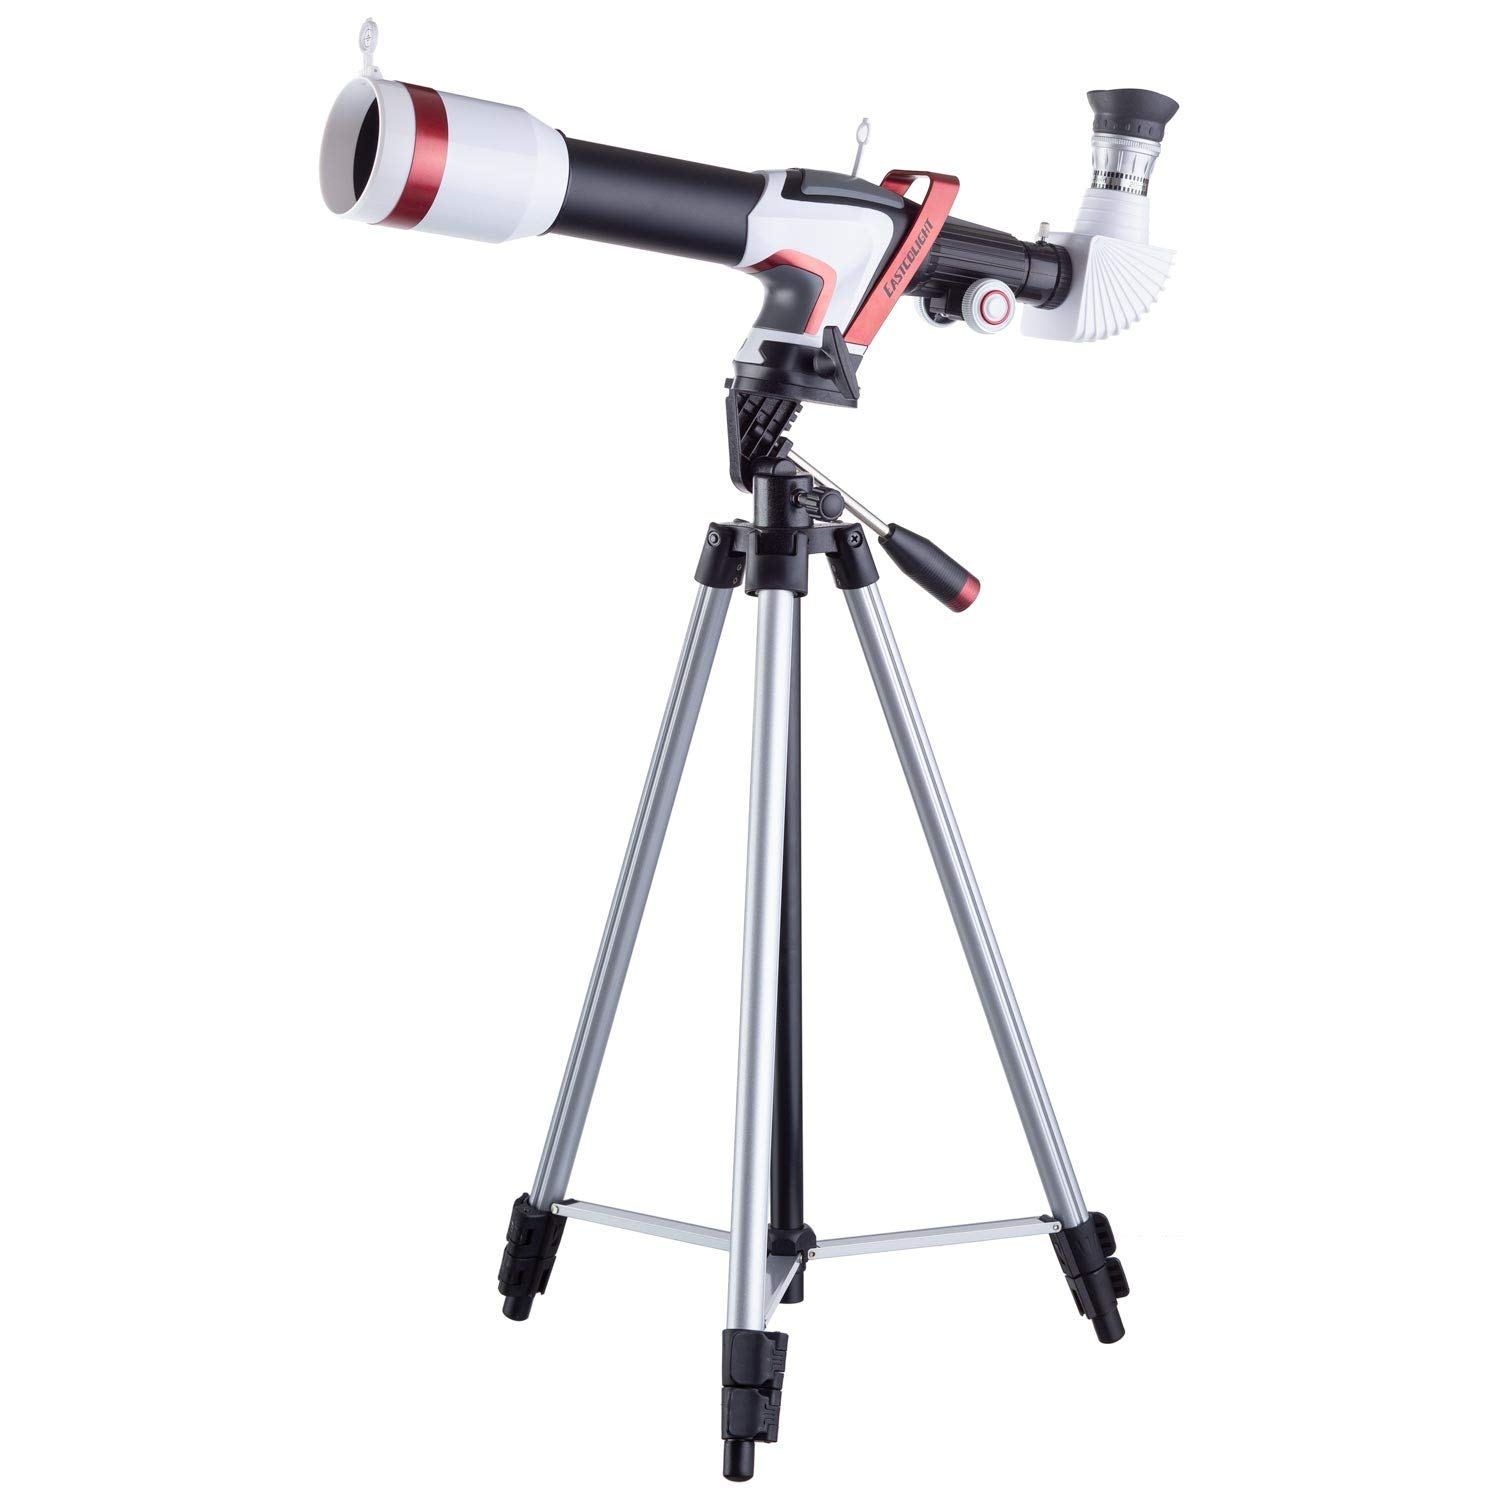 IQCrew AK-8003 375 Power 50mm Telescope with Aluminum Tripod + Smartphone Adapter by IQCREW